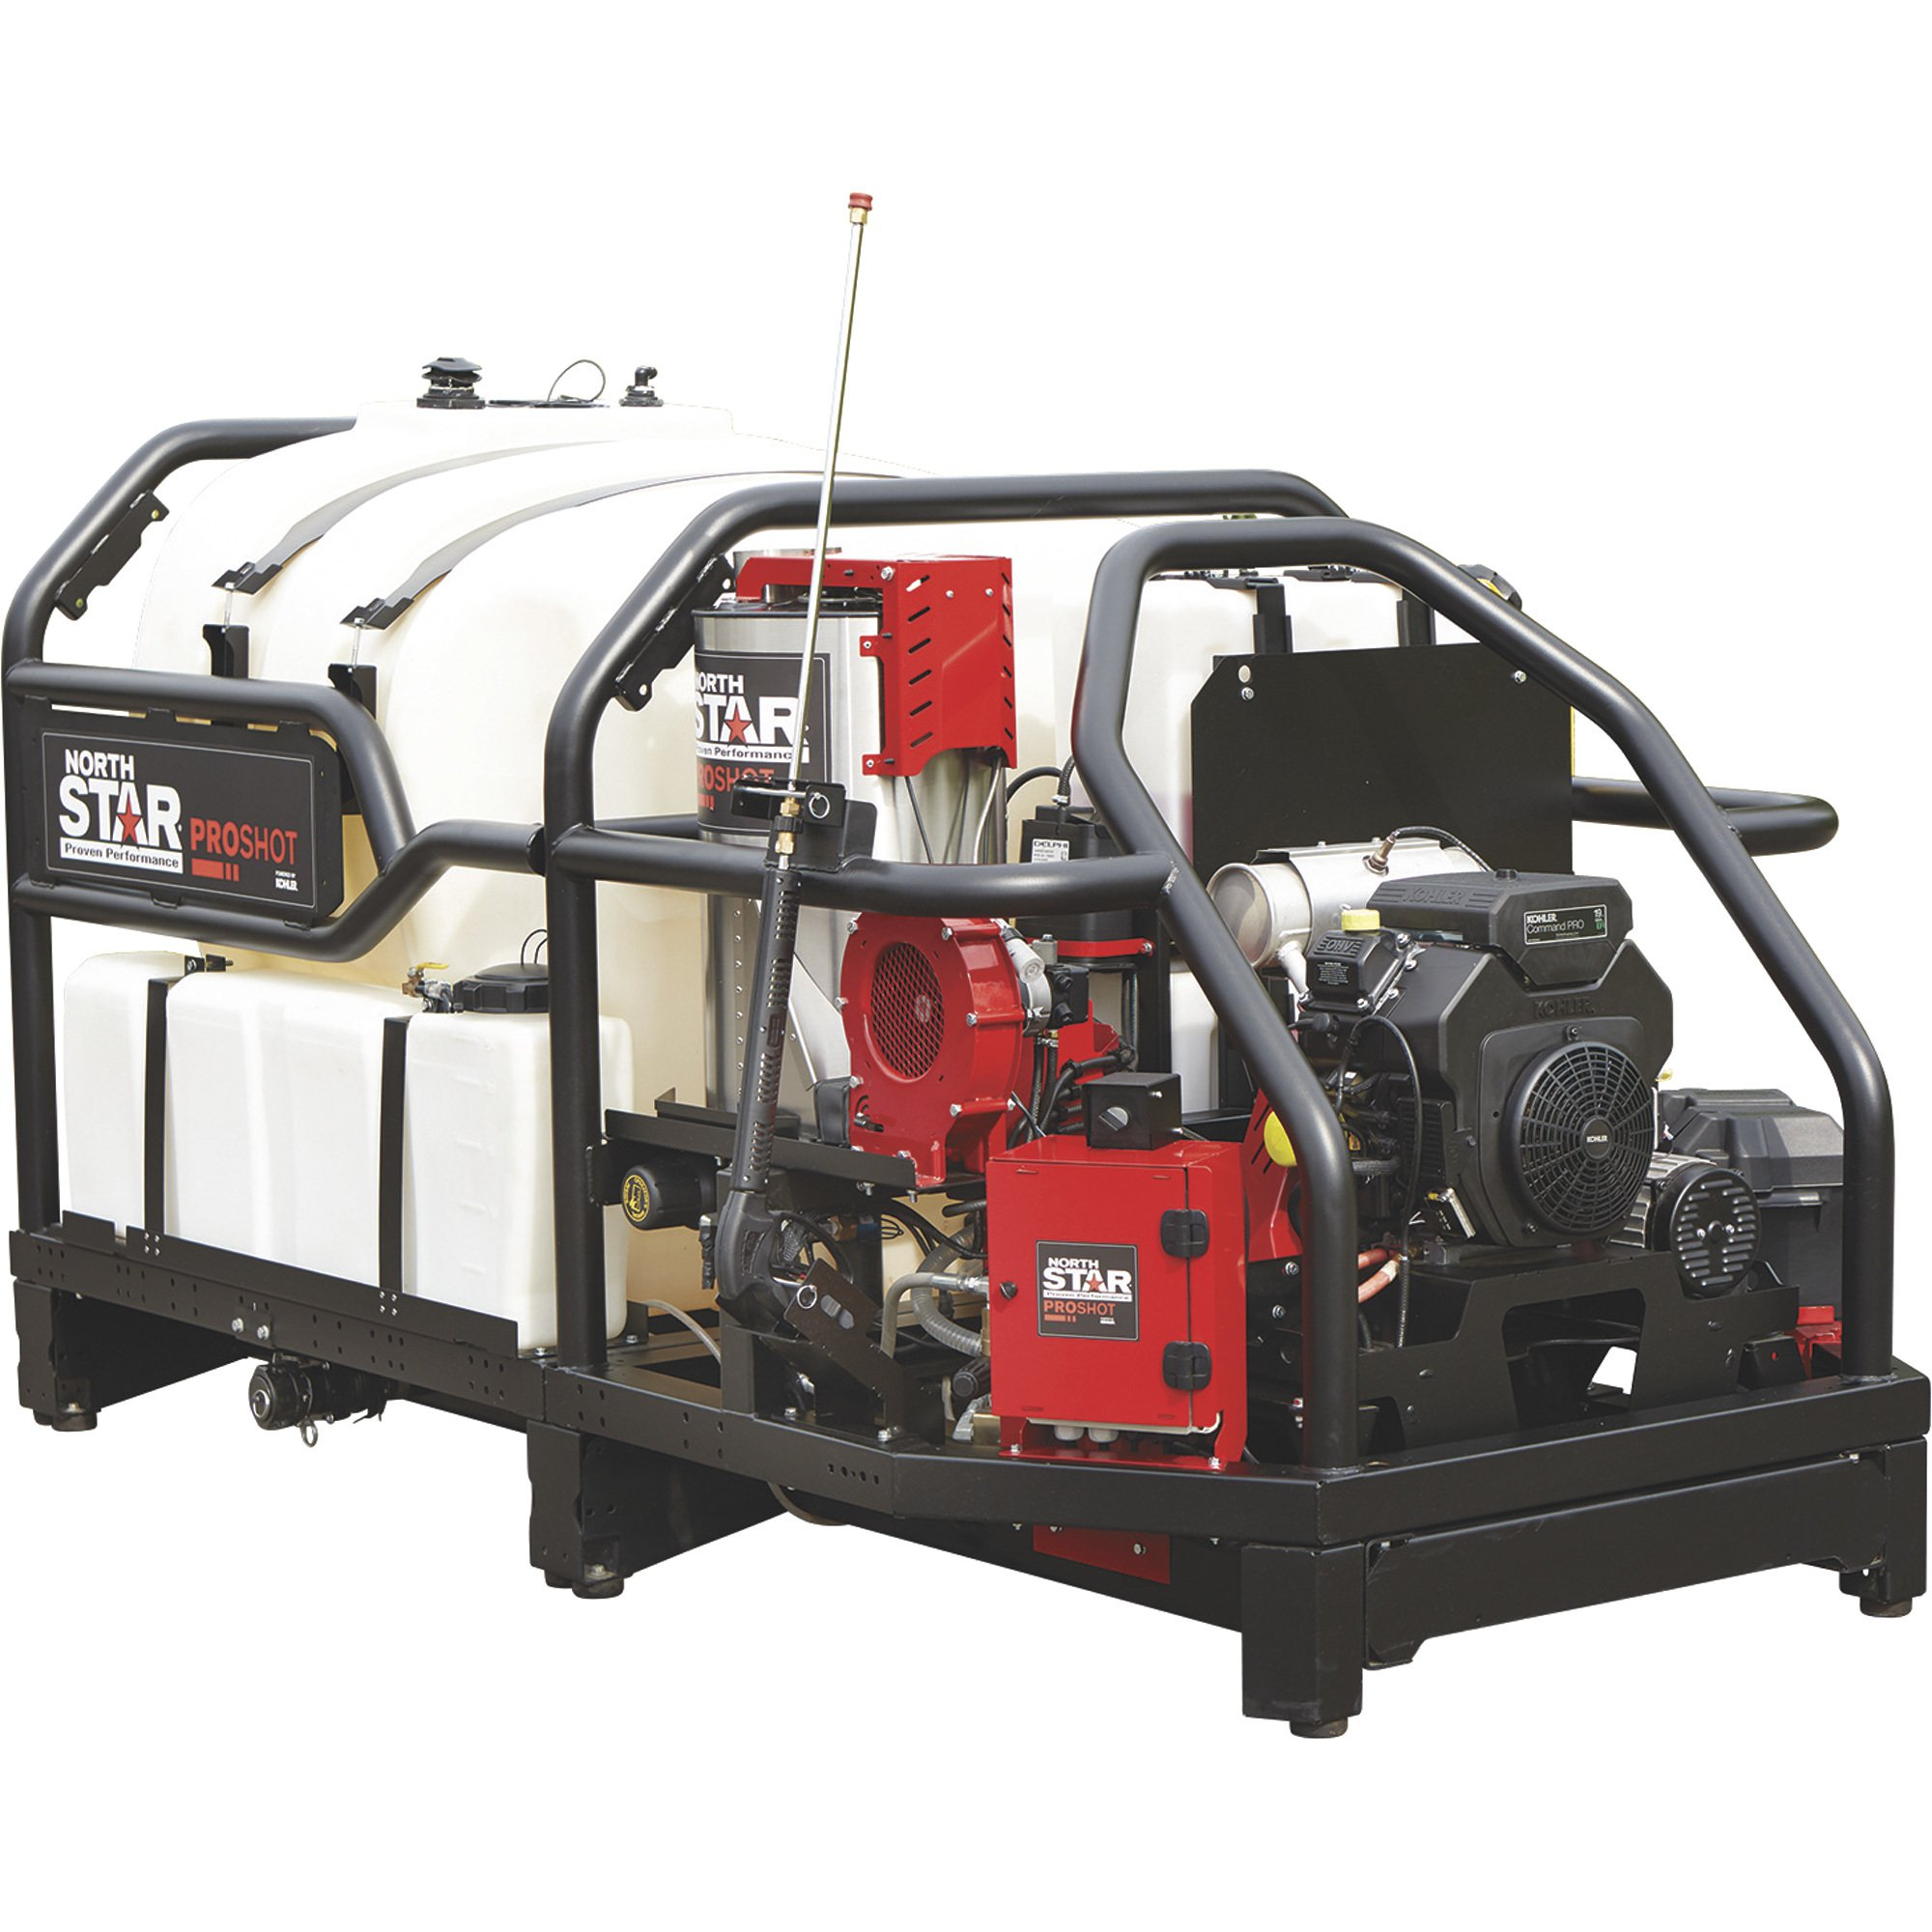 NorthStar 157573 ProShot Hot Water Commercial Pressure Washer Skid — 4000 PSI, 5.5 GPM, Kohler Engine — FREE SHIPPING